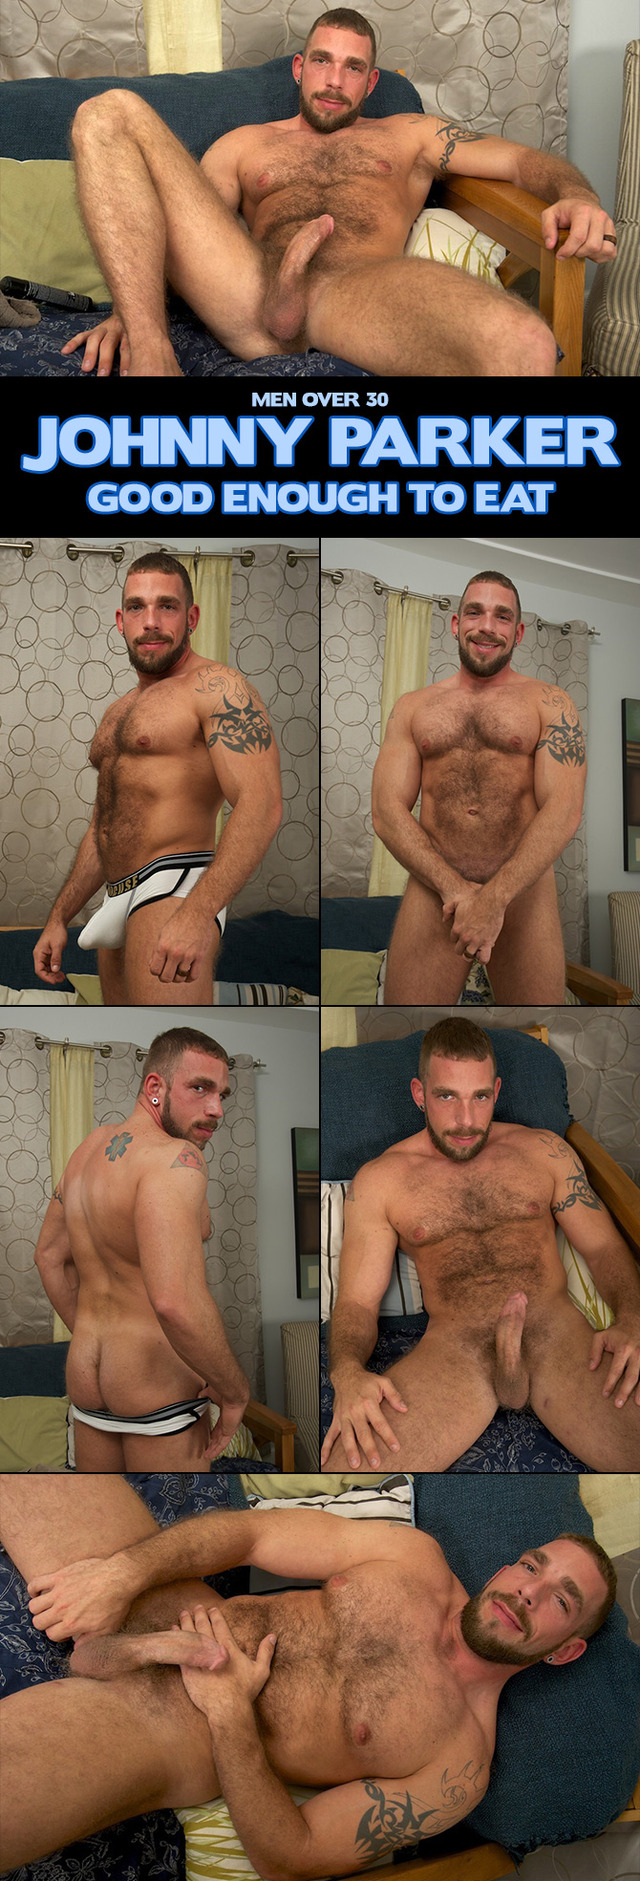 hairy bushy porn hairy man collages parker johnny hunk bushy menover